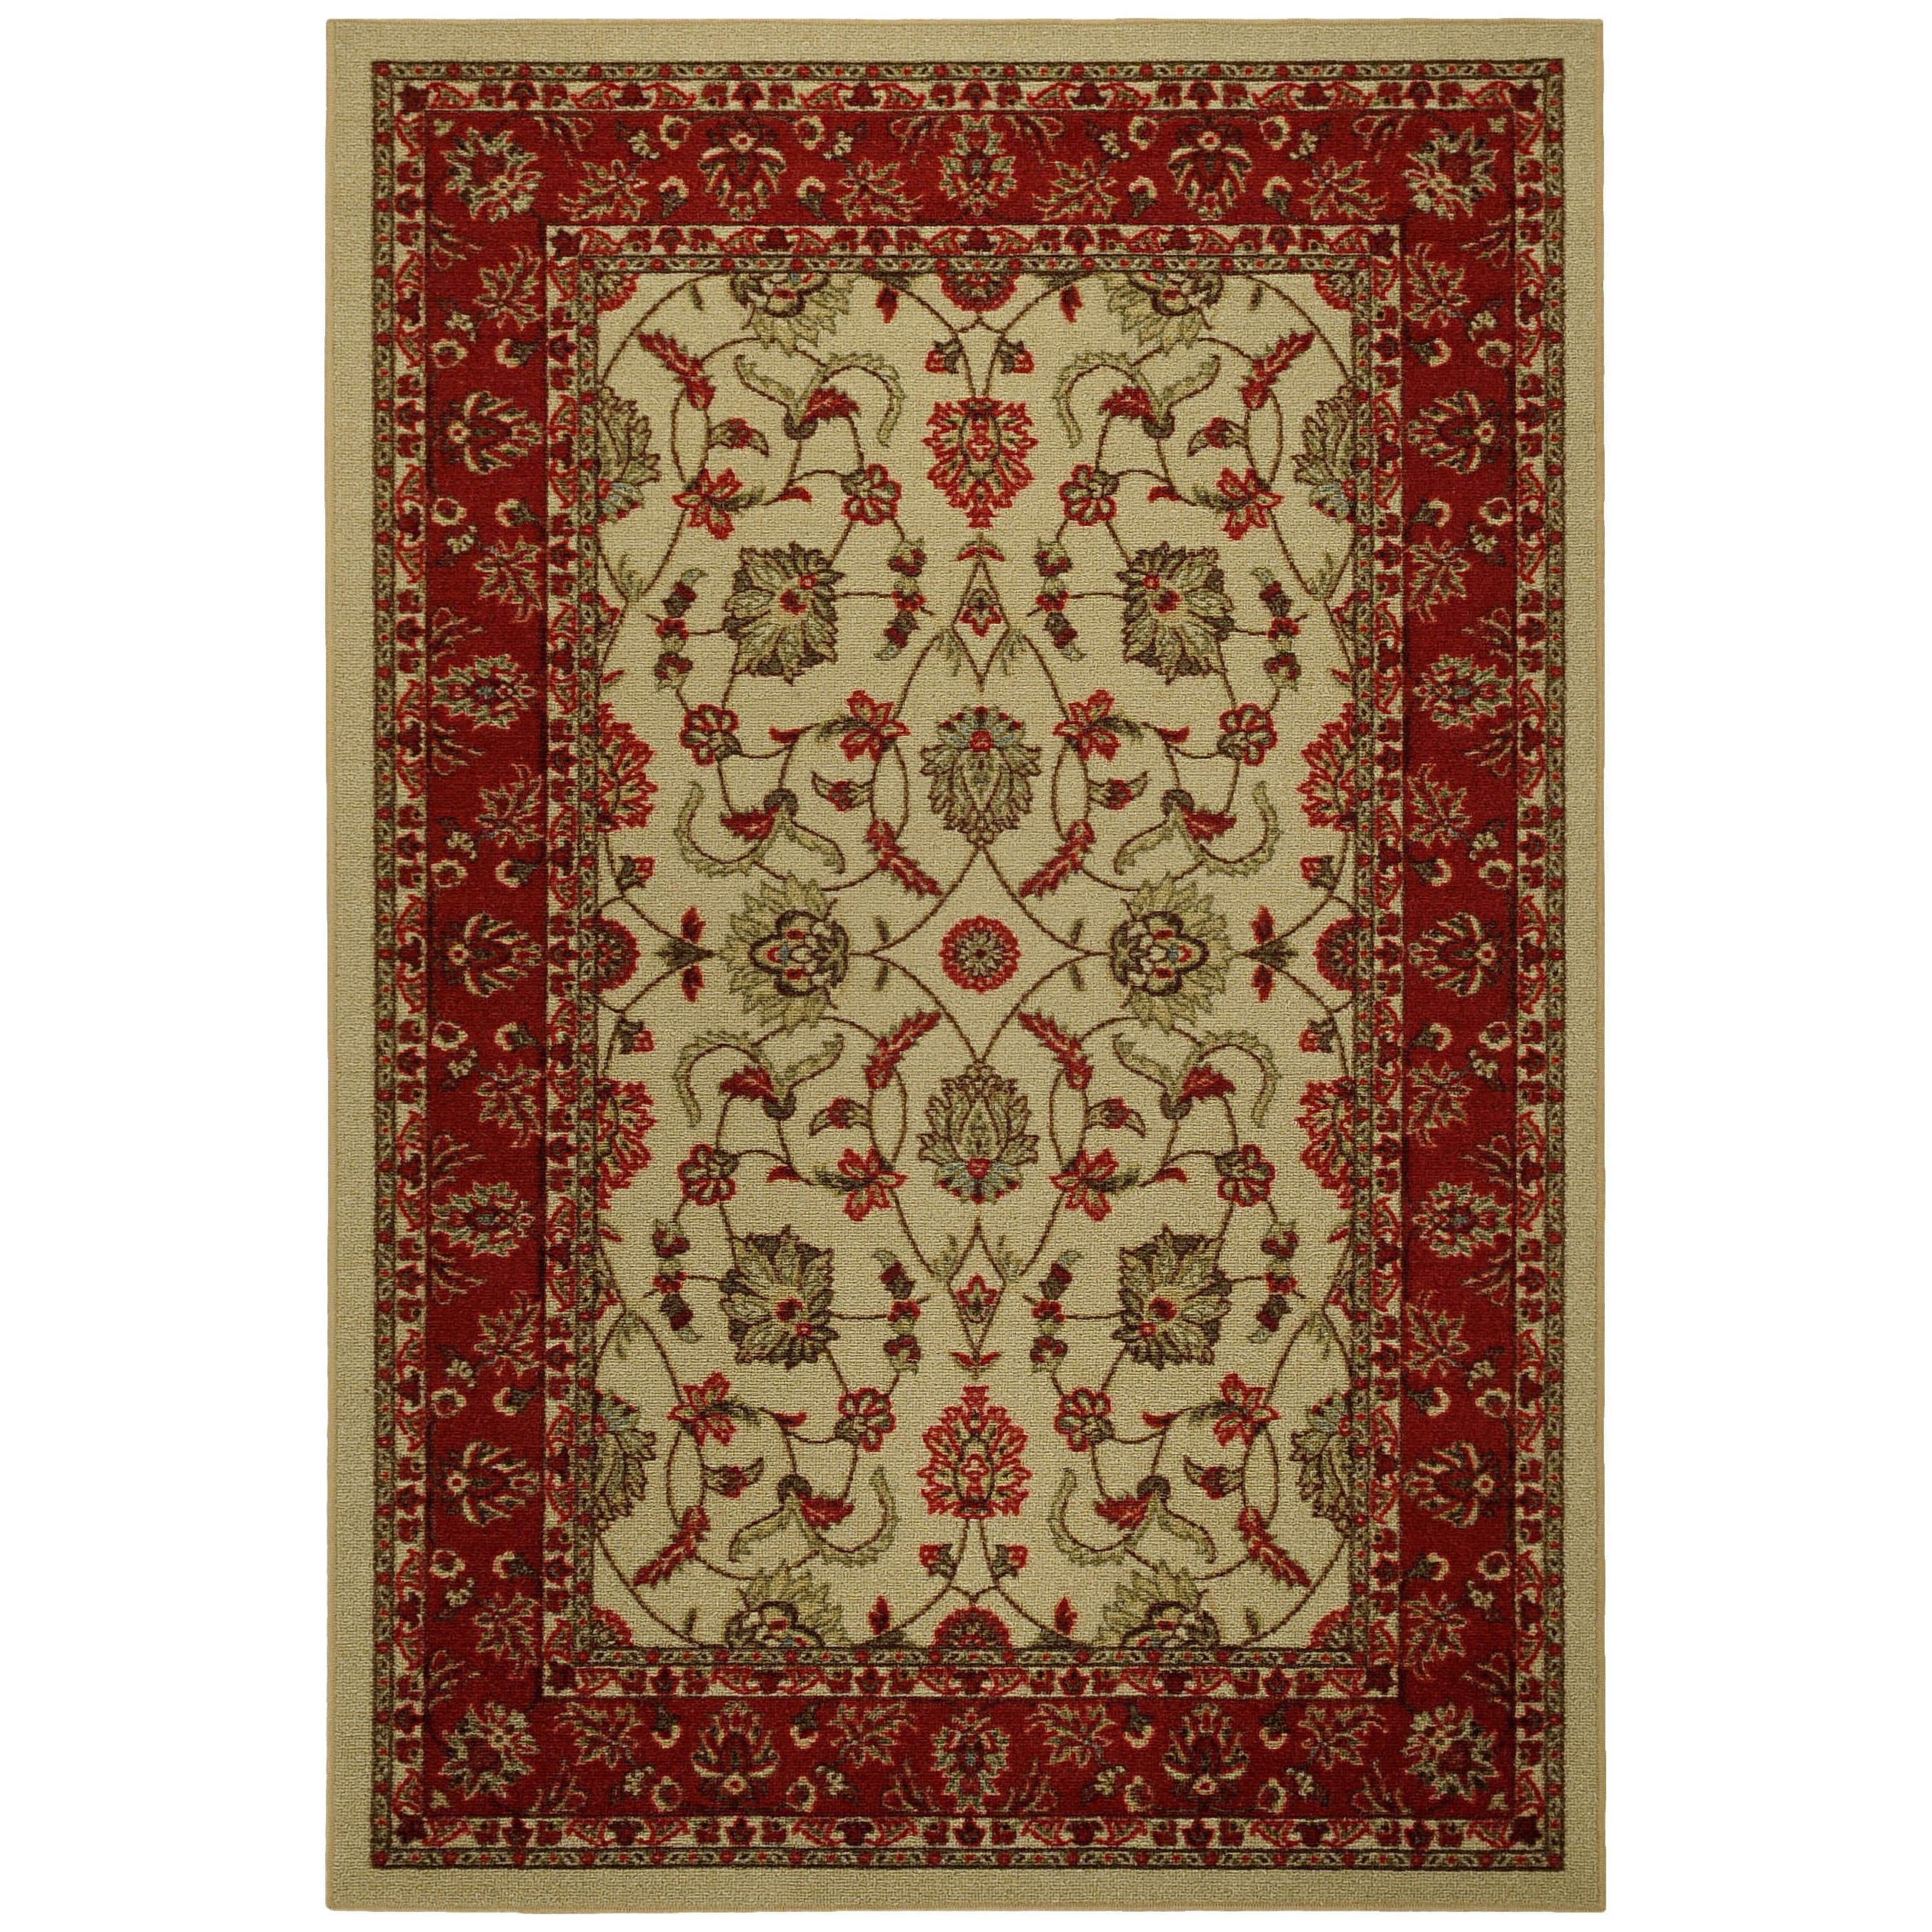 Rubber Back Ivory Traditional Floral Non-Skid Area Rug (3'3 x 5') at Sears.com